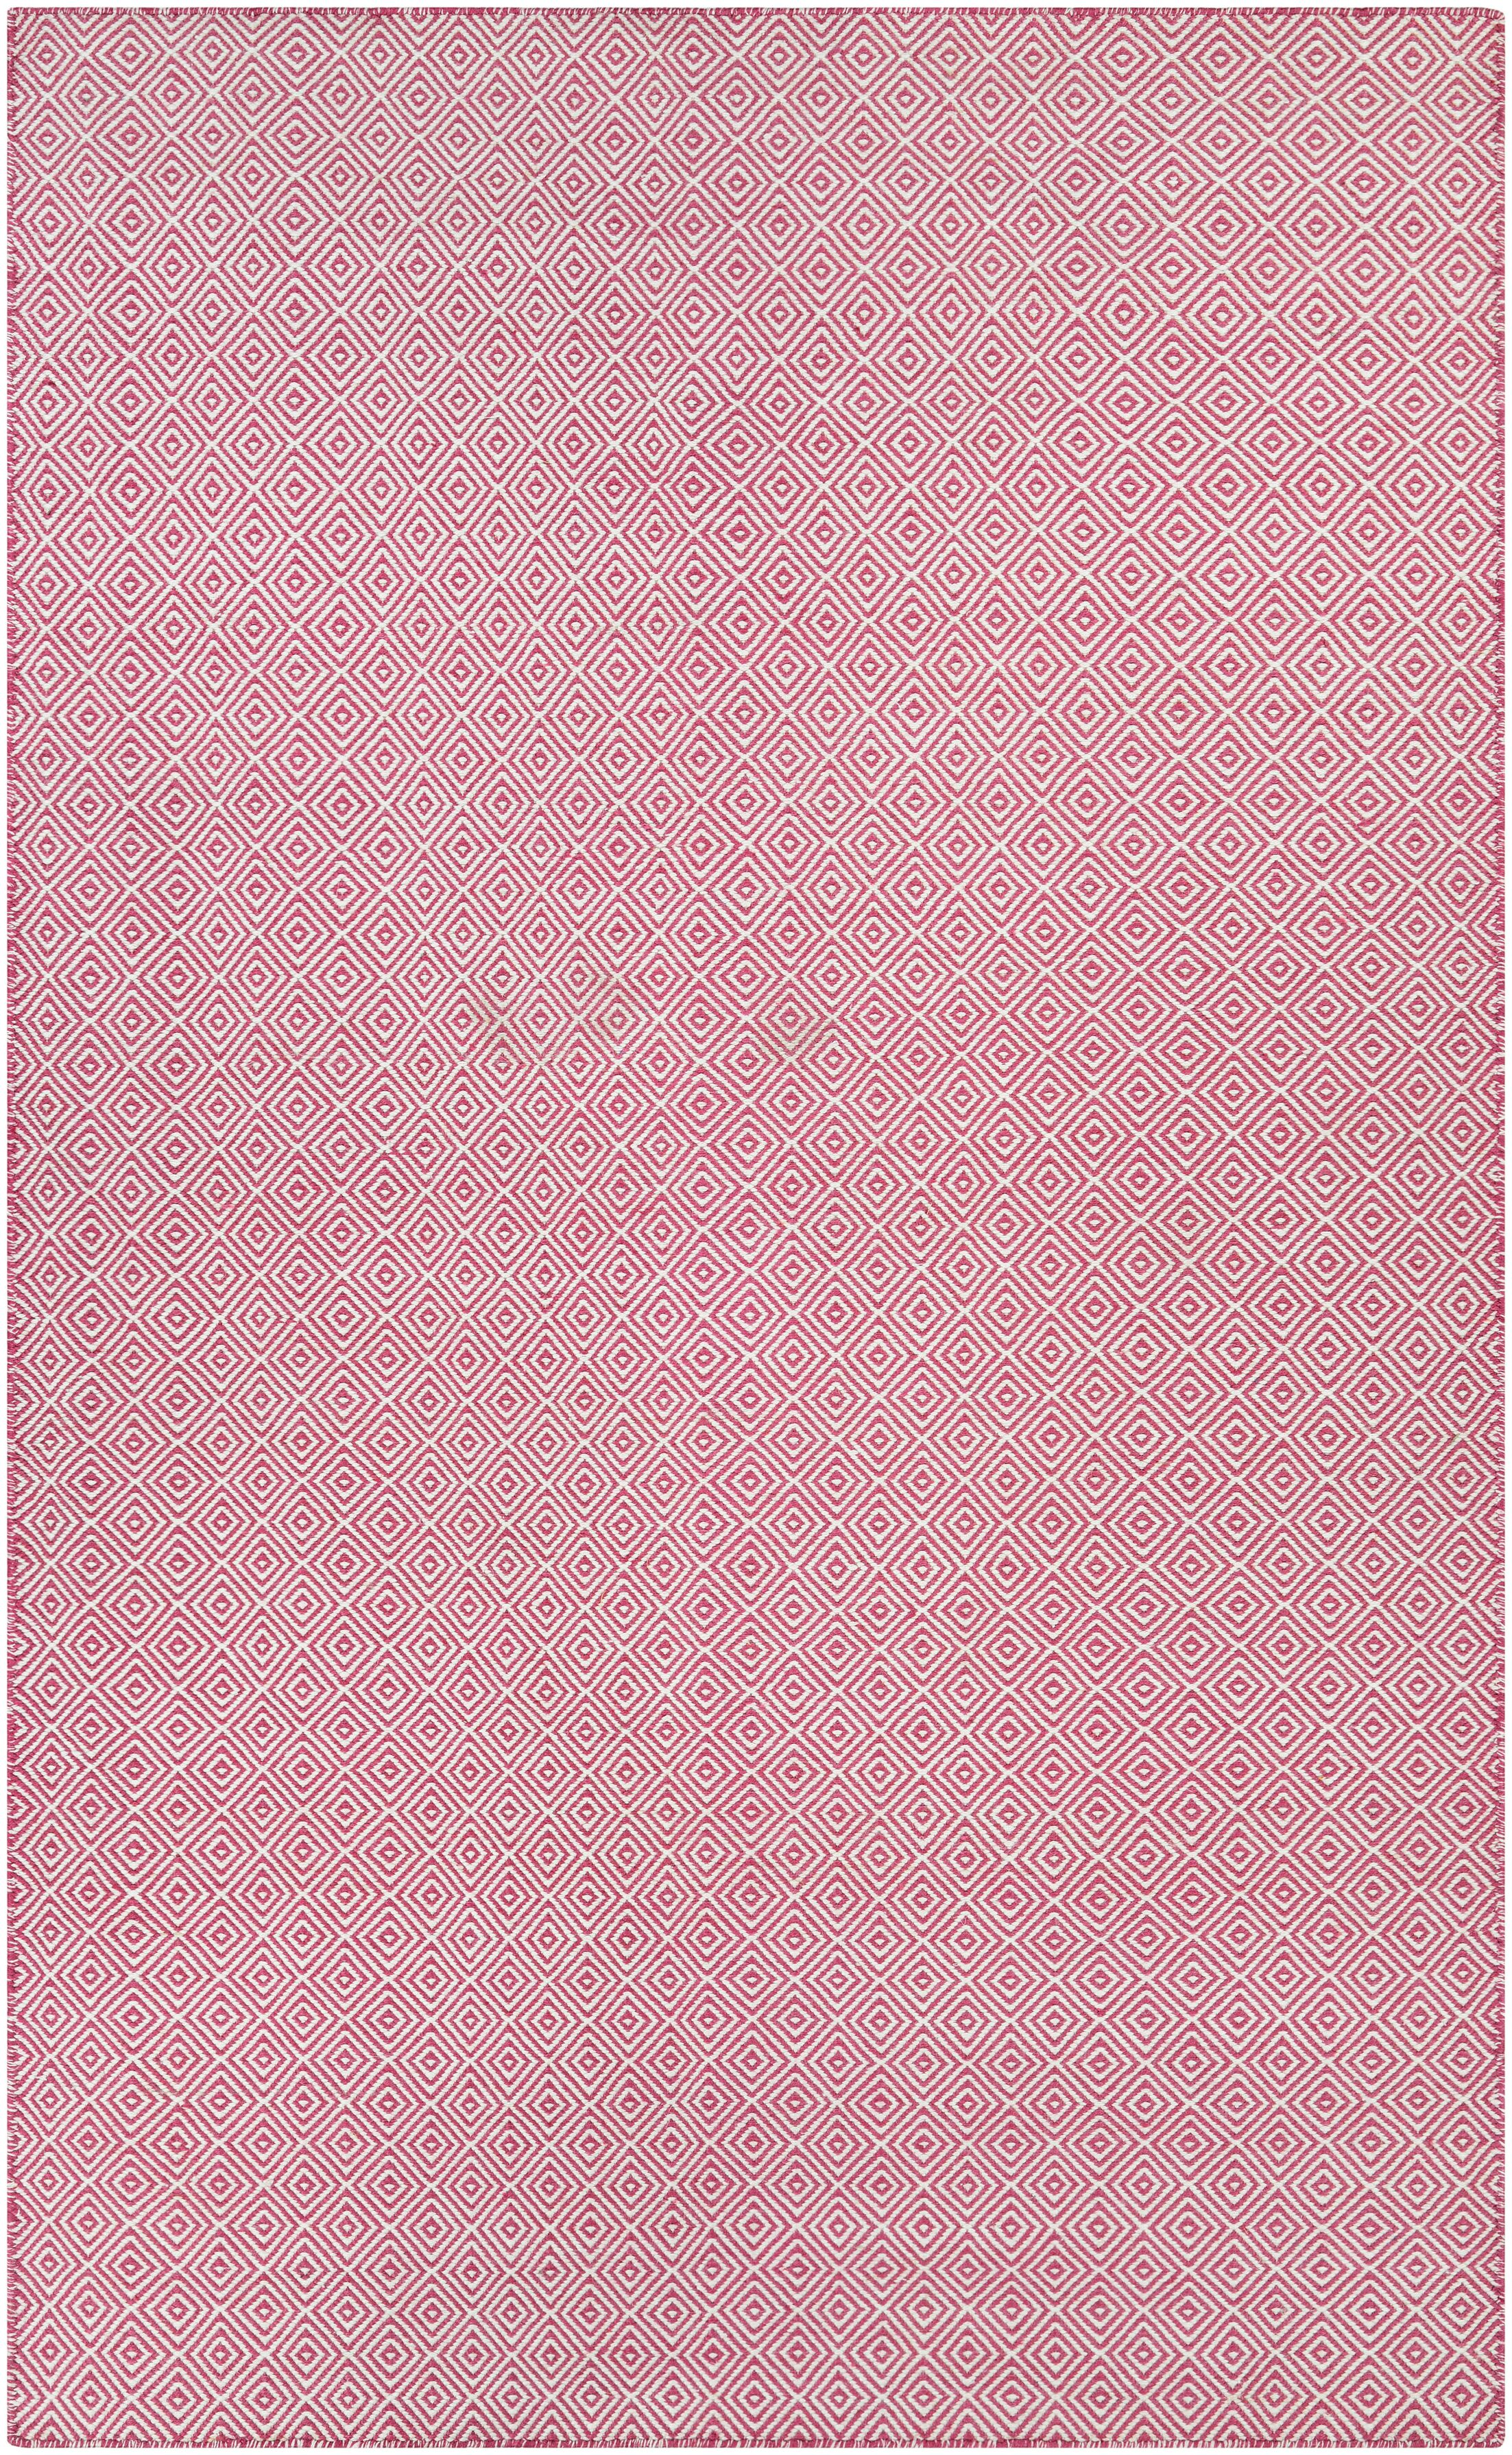 Alonso Hand-Woven Pink Indoor/Outdoor Area Rug Rug Size: Runner 2'3